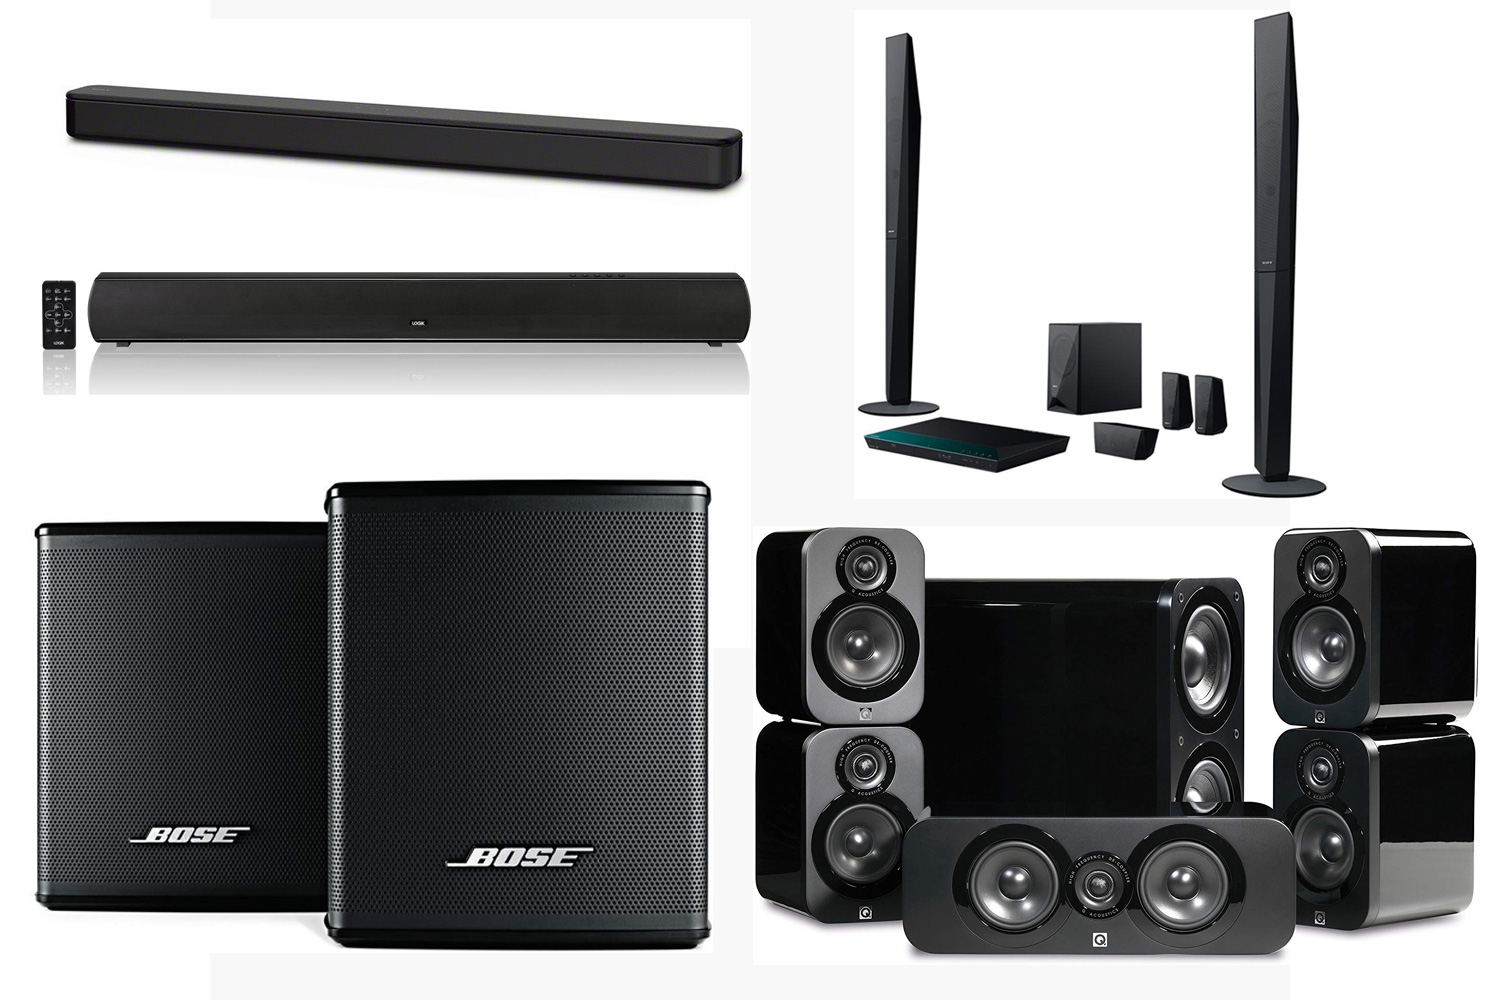 Bose Home Cinema Best Surround Sound Systems: From Bestselling To Affordable Wireless Devices And Audio Bars